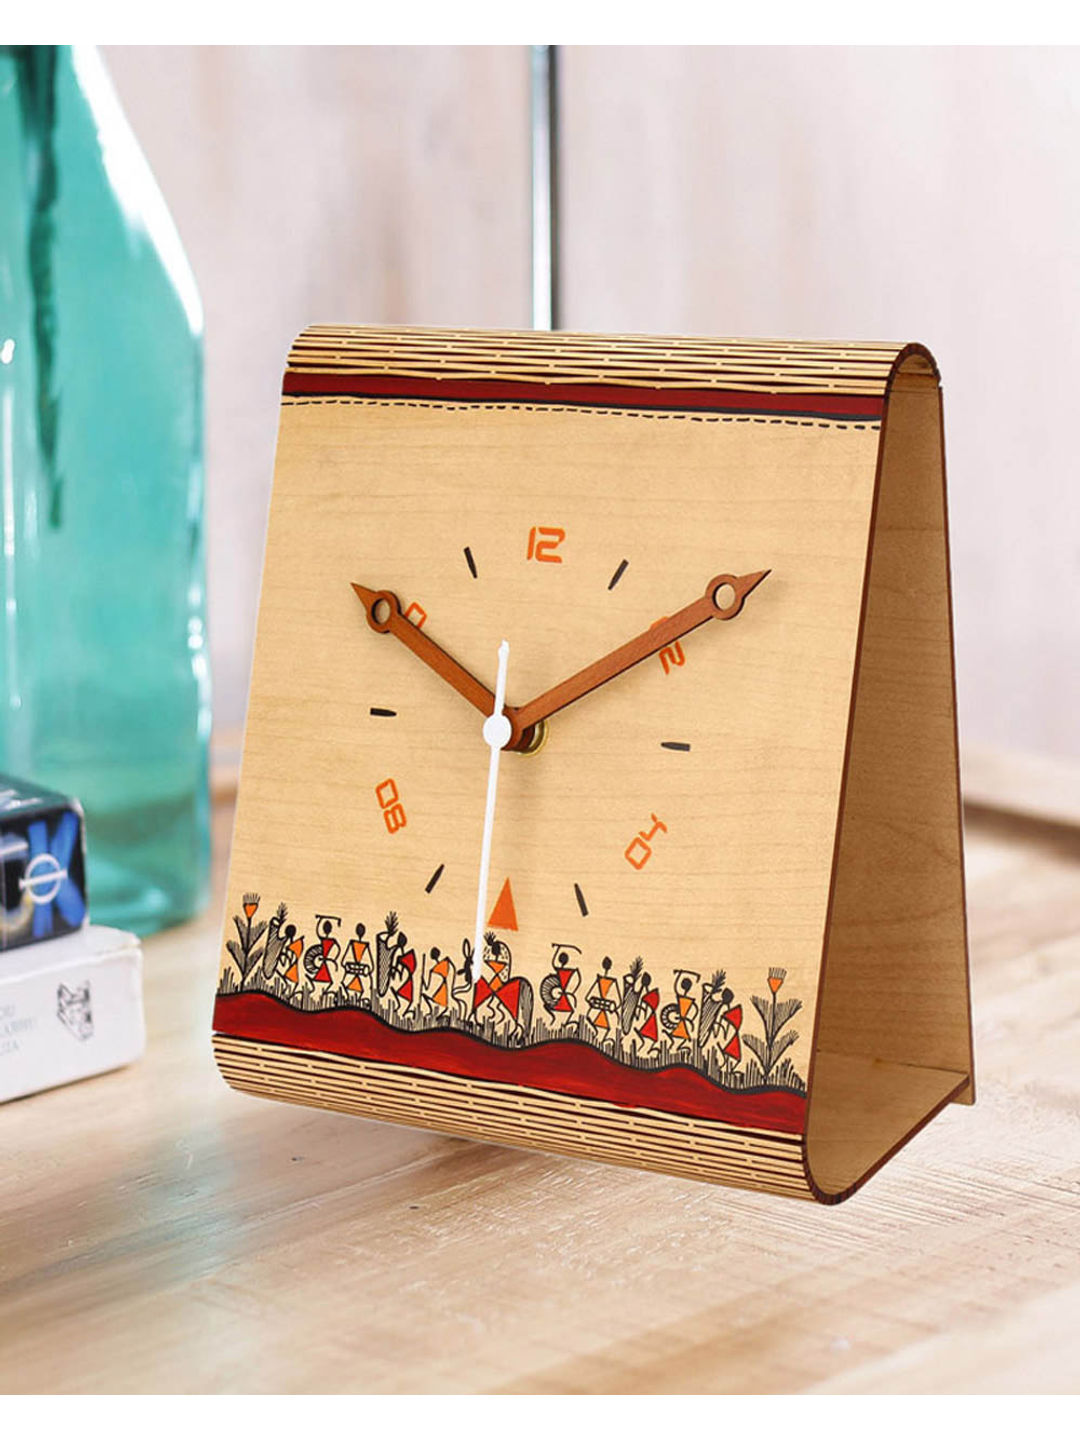 Handcrafted Wooden Warli Table Clock